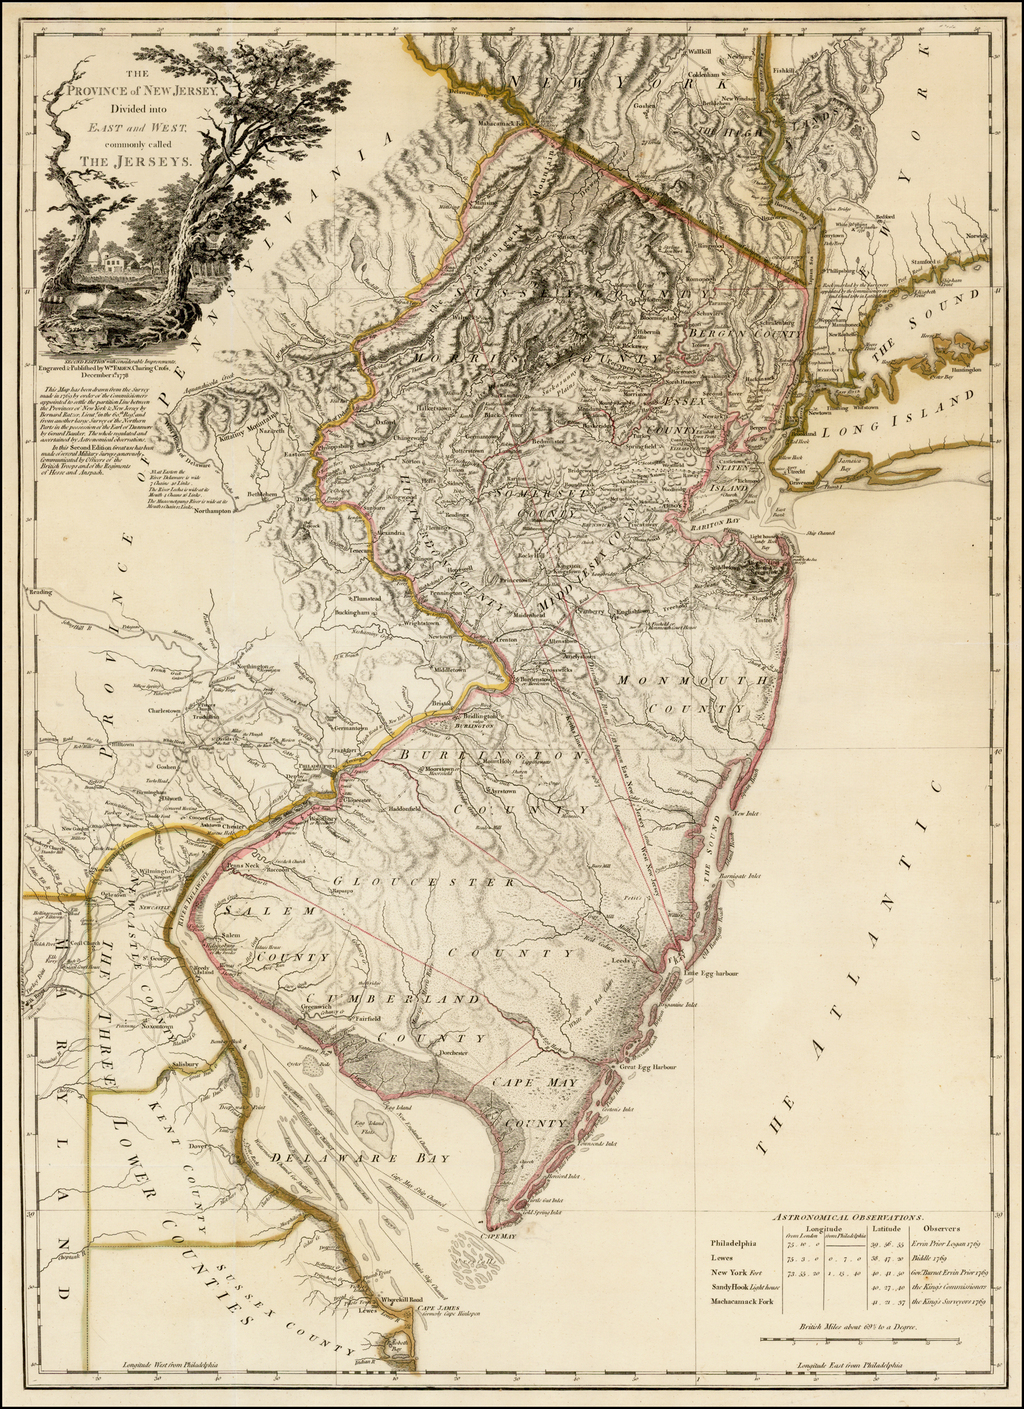 The Province of New Jersey Divided into East and West, commonly called the Jerseys . . . 1778 By William Faden